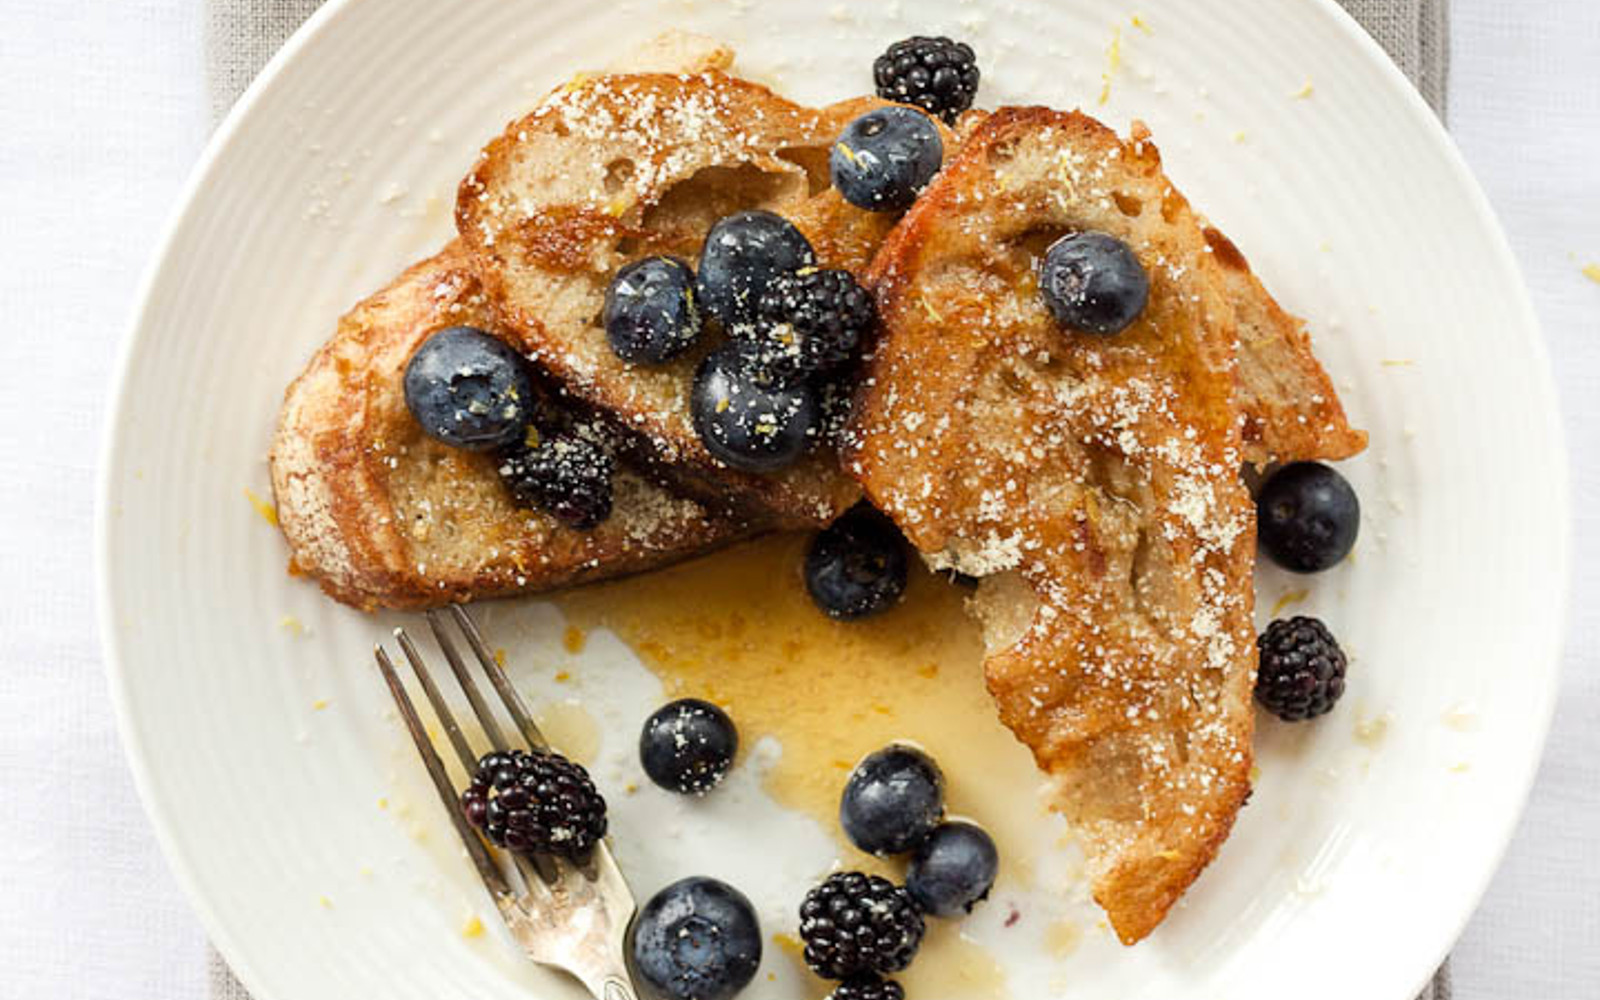 Almond Cardamom and Vanilla French Toast